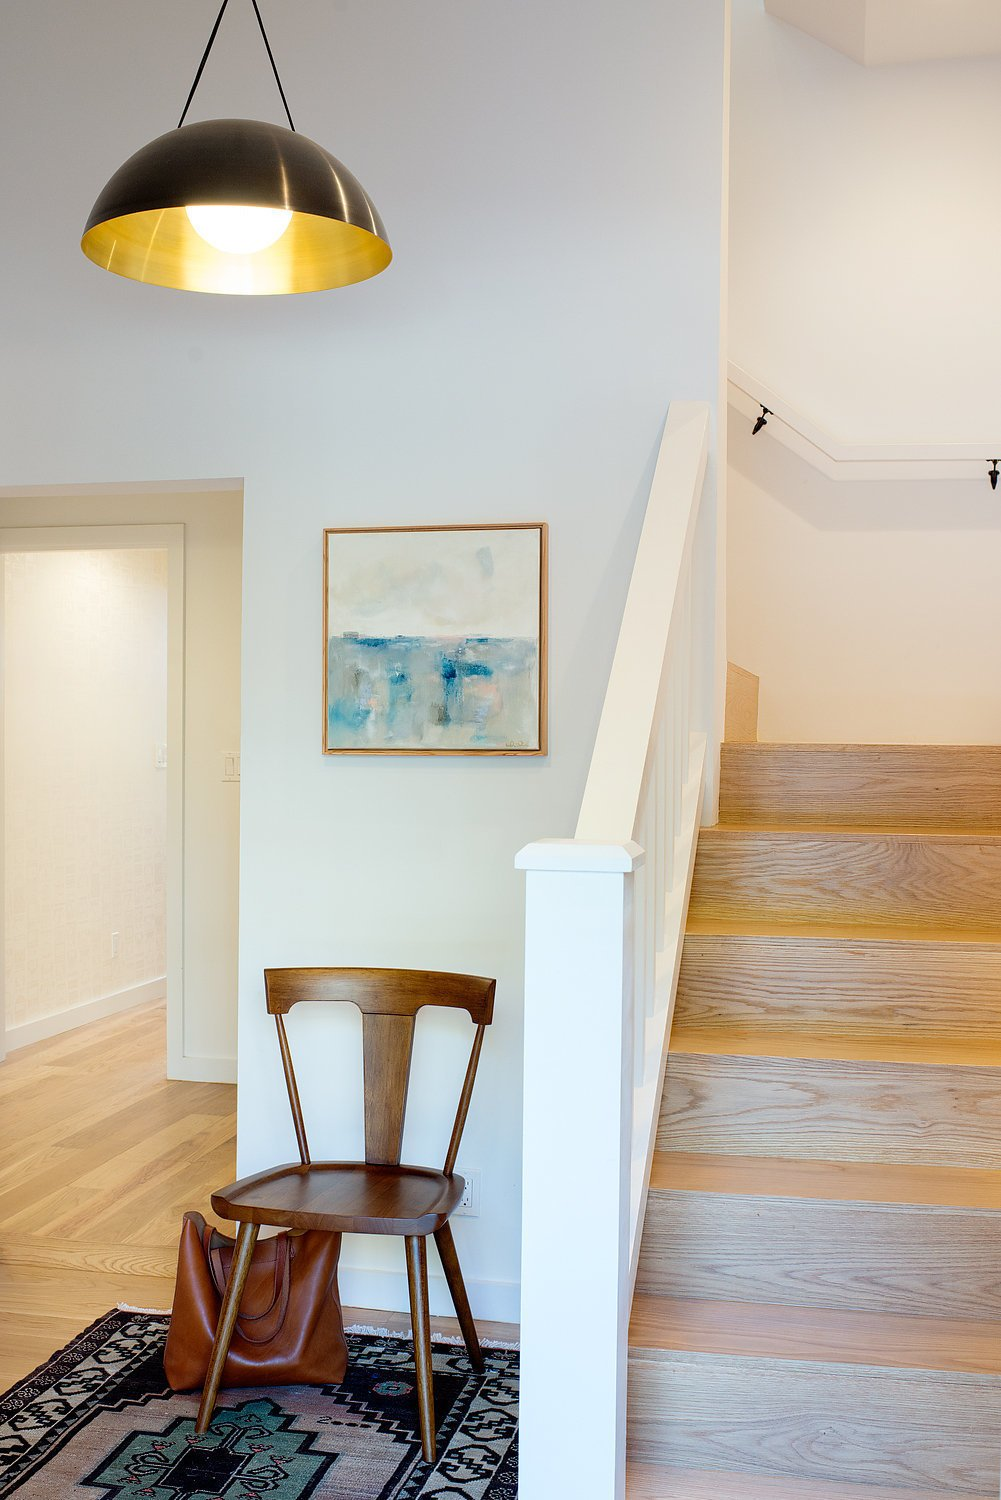 The ground floor entry was once a mix and match of different flooring materials and floor level heights. All the details were though out to create a functional, one-level space with new white oak flooring and stair treads to match the upstairs rooms.   Chenery Street Remodel by SF Design Build